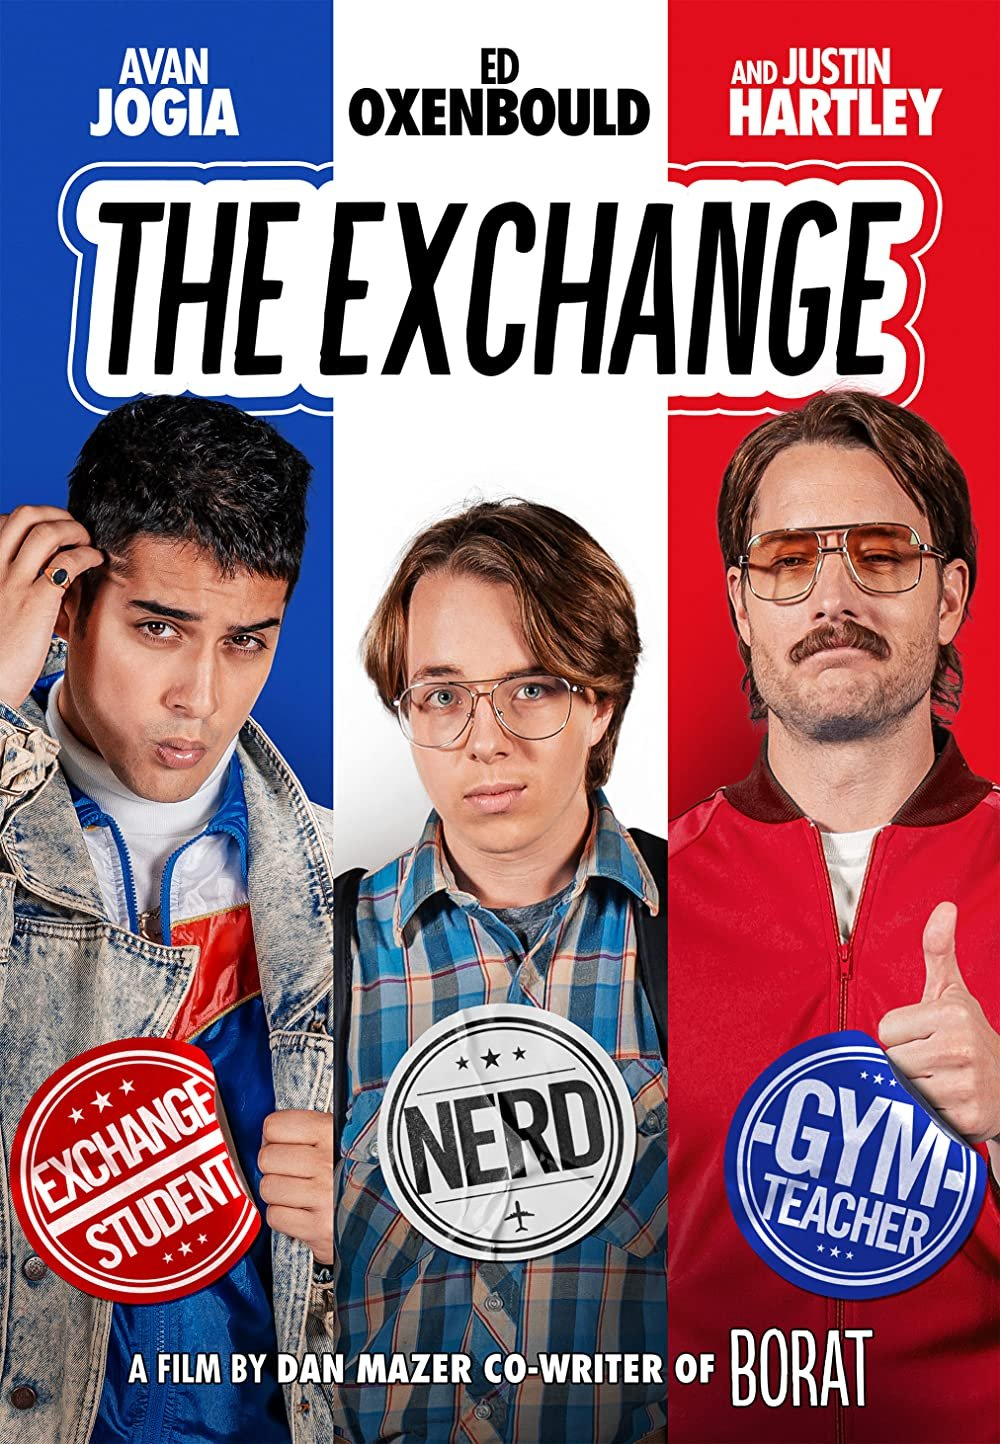 The Exchange poster image